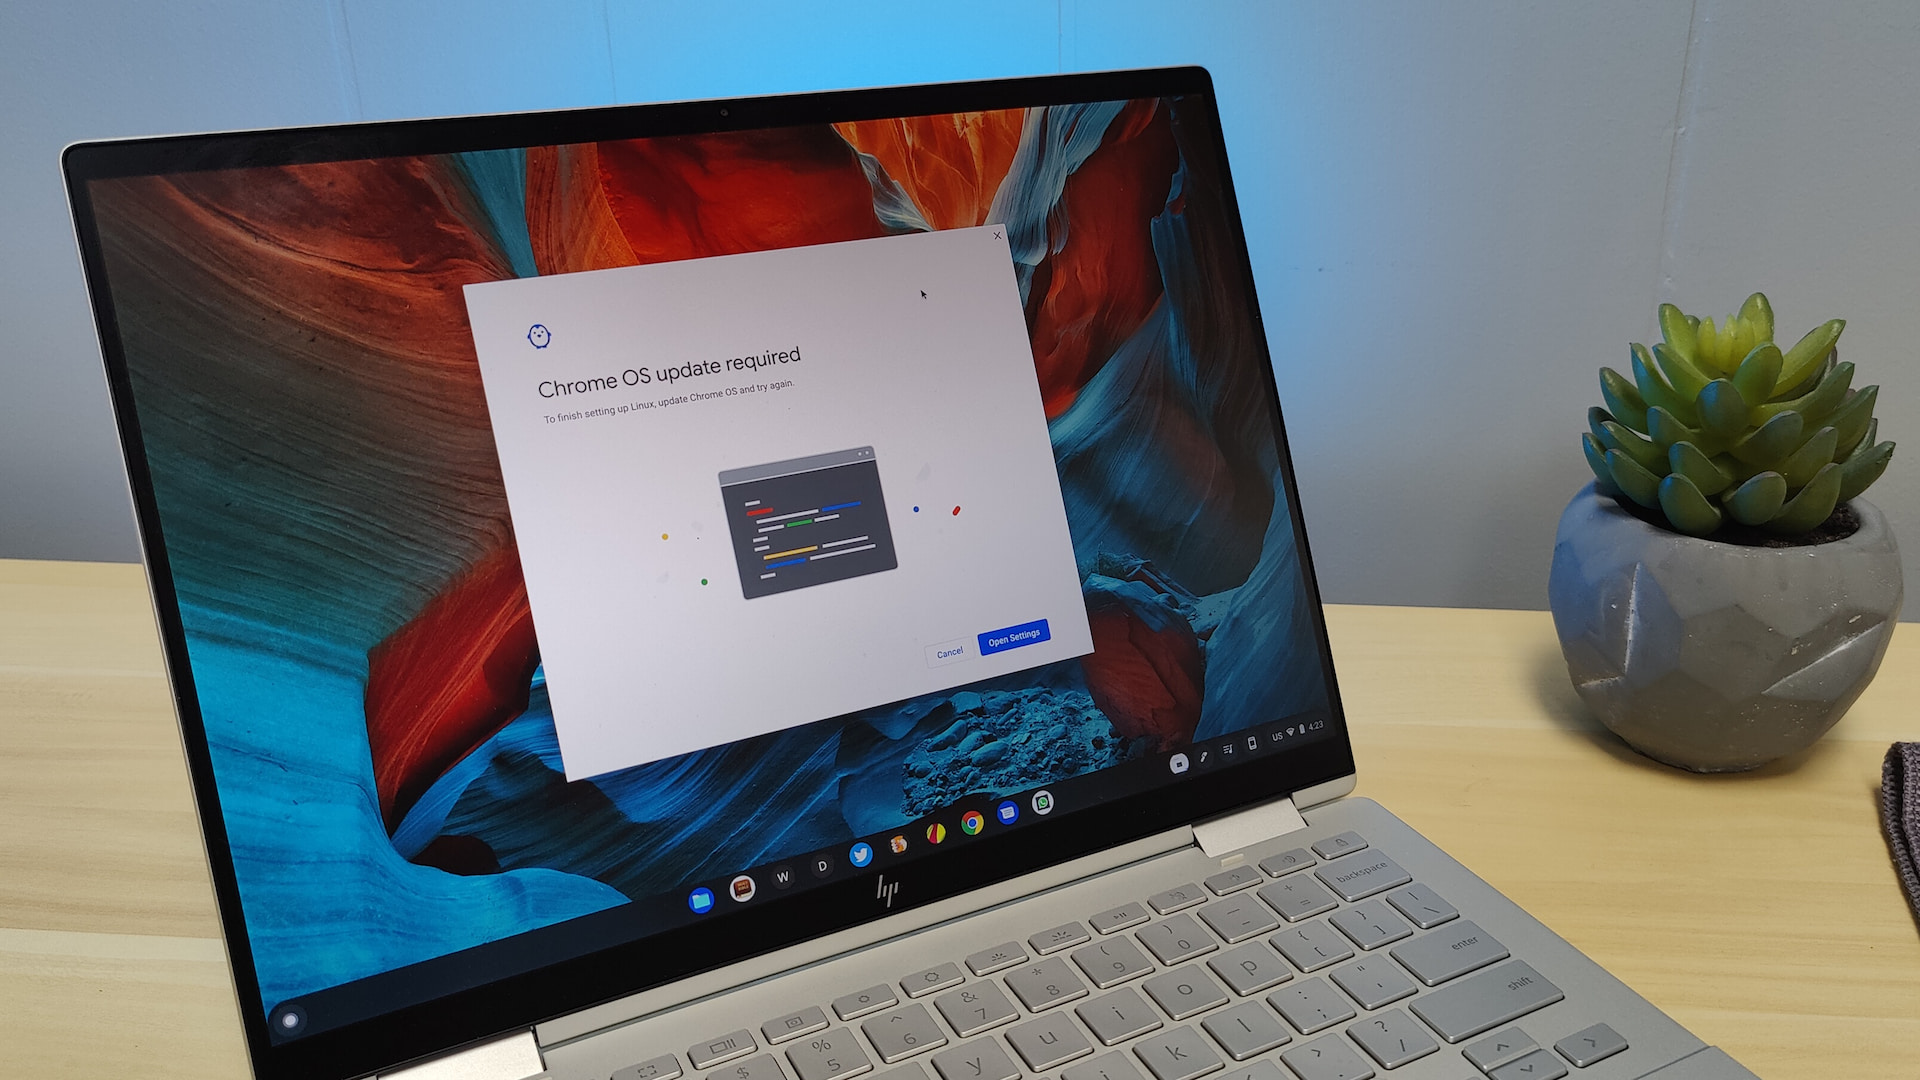 Chrome OS 91 broke Linux, here's the workaround